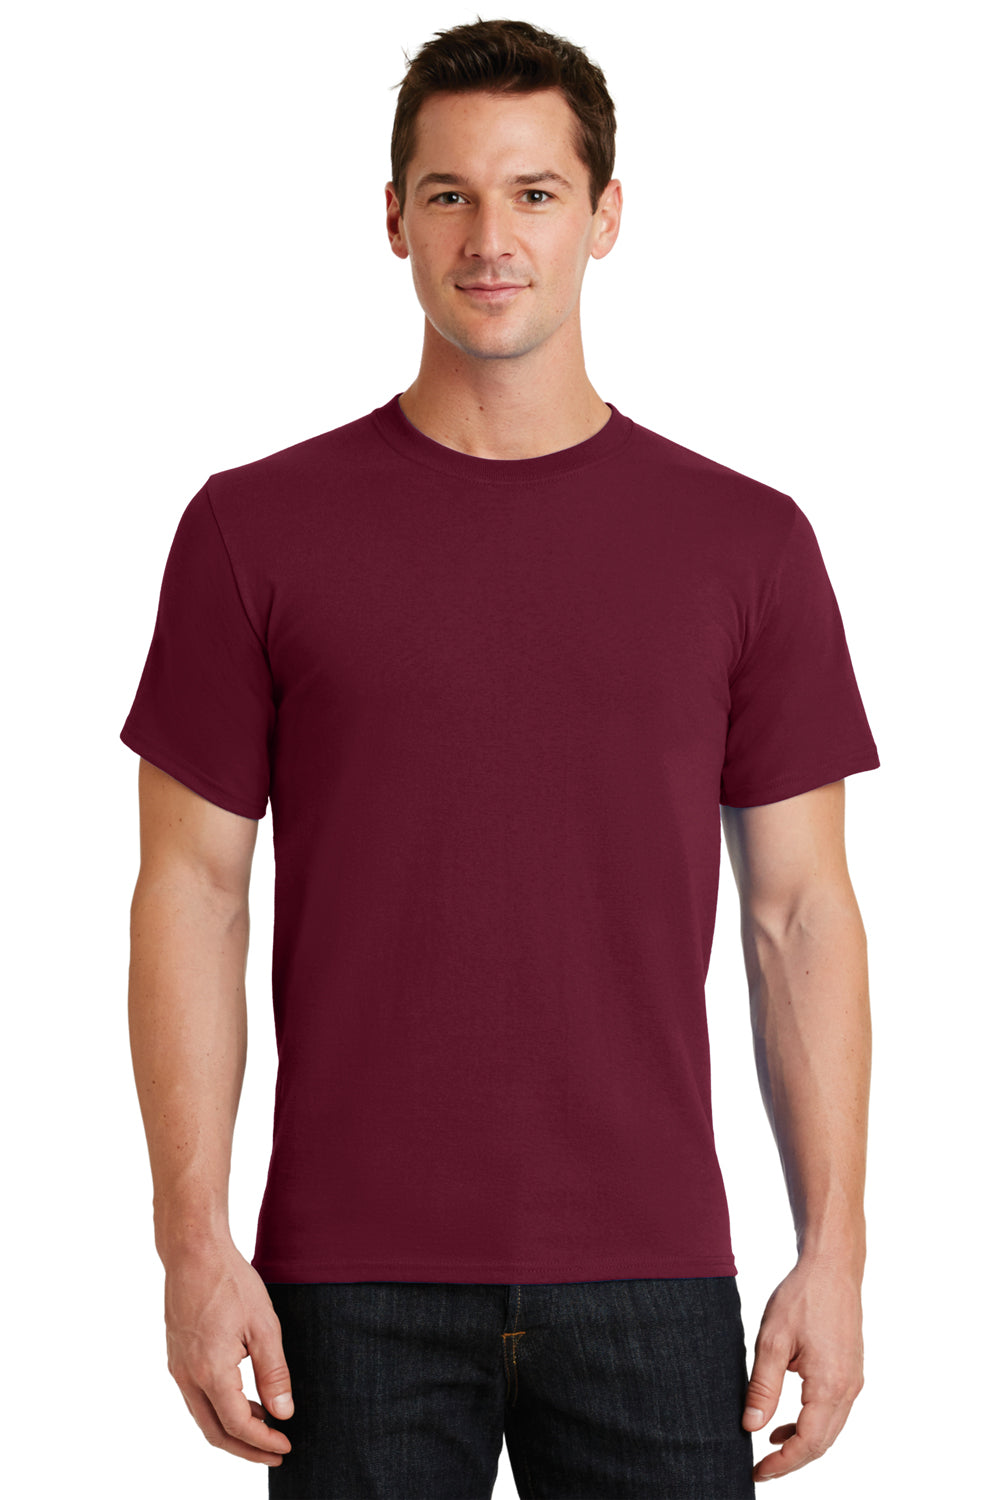 Port & Company PC61 Mens Essential Short Sleeve Crewneck T-Shirt Cardinal Red Front